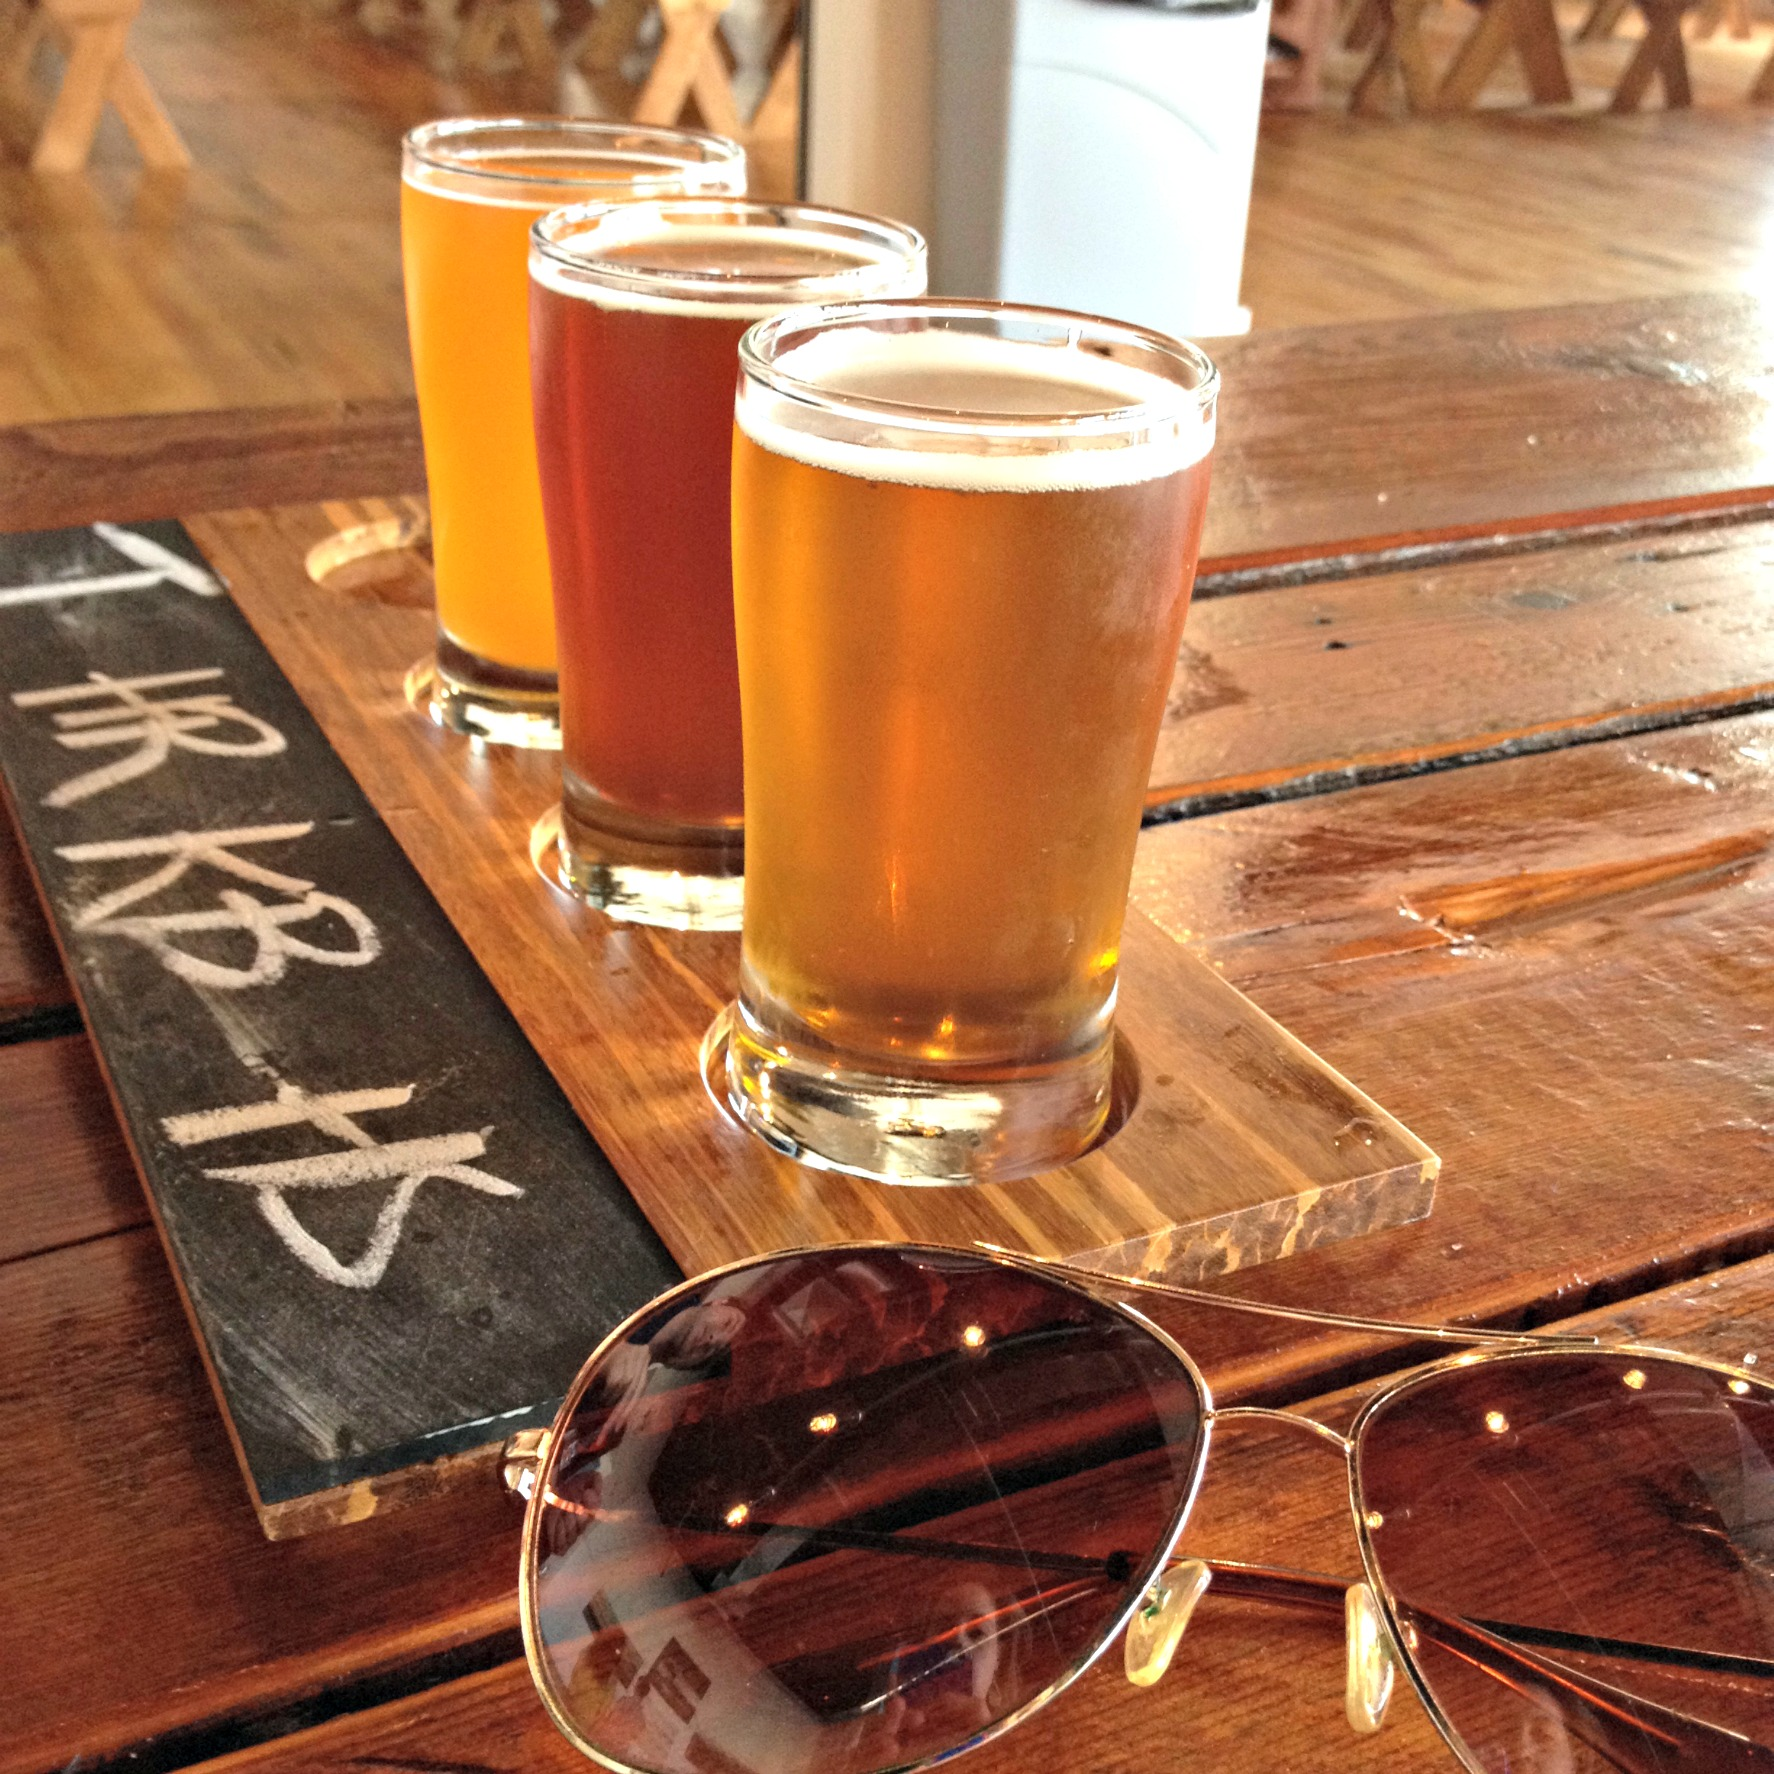 Beach and Beer: Beach Haus Brewery in Belmar, NJ